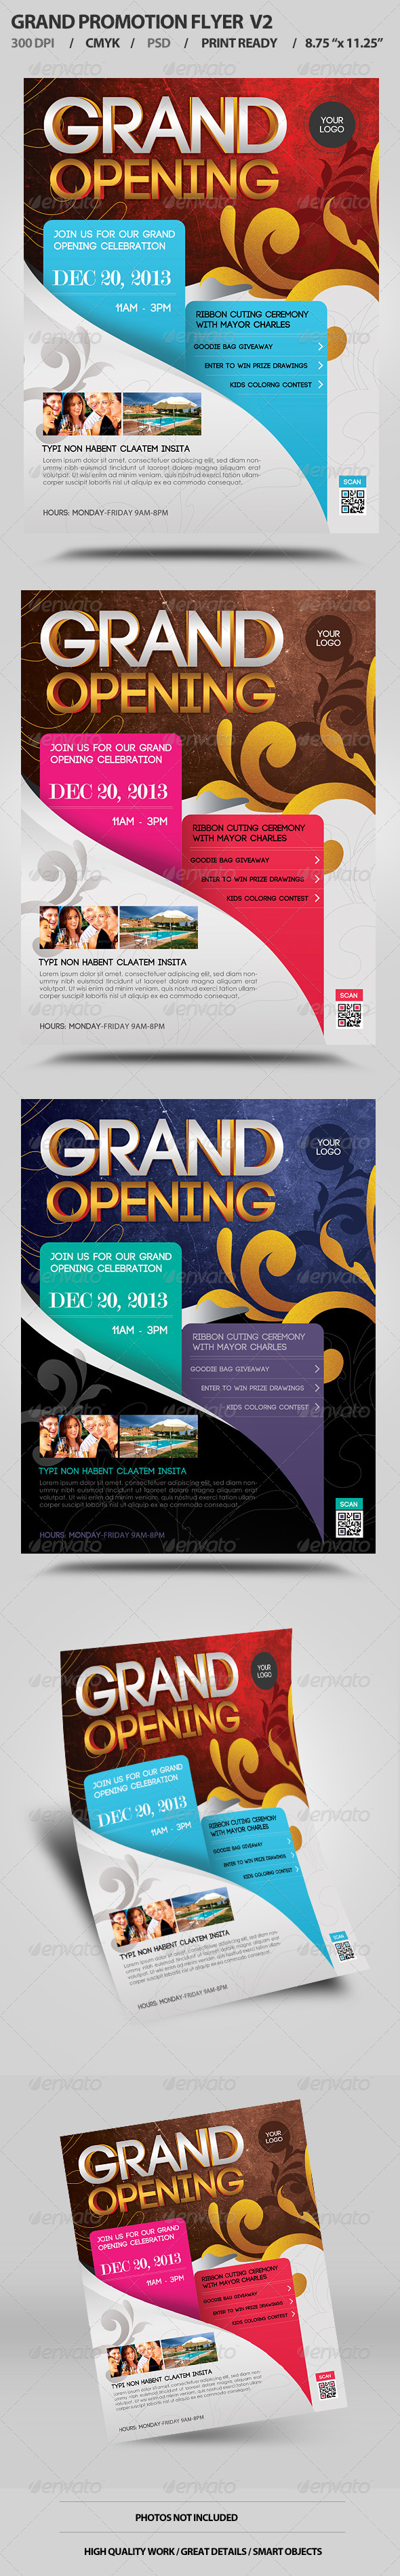 Grand Opening Flyer V2  - Events Flyers